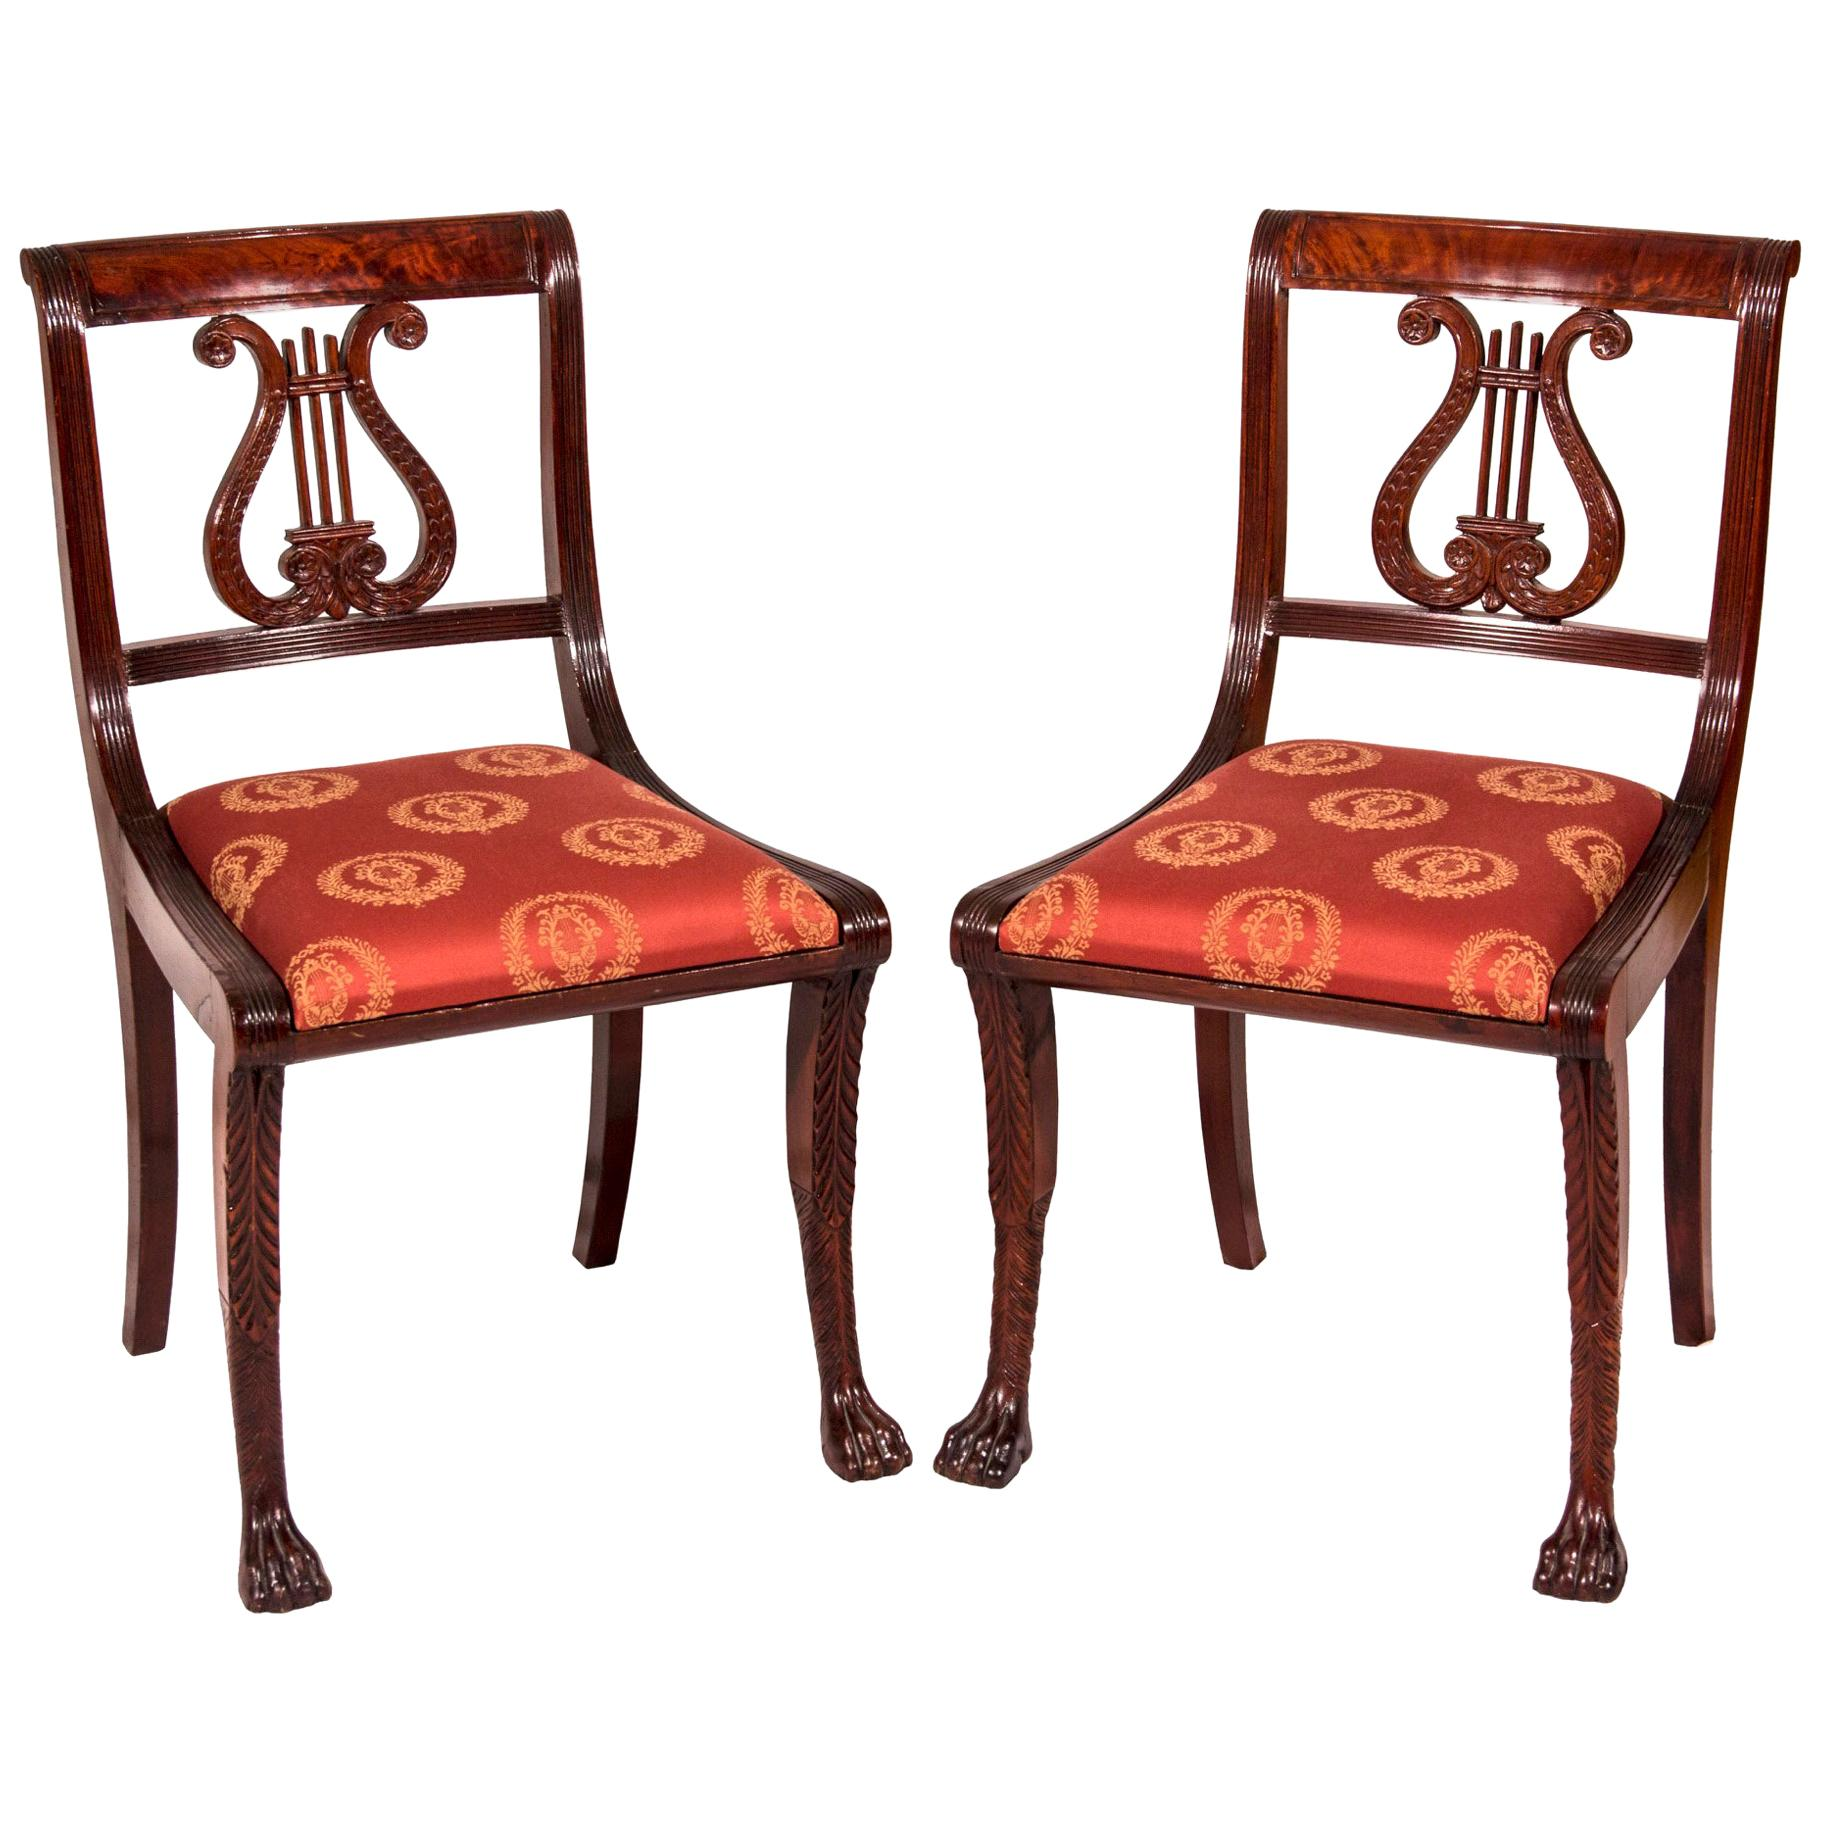 Pair of Classical Lyre-Back Mahogany Side Chairs with Paw Feet, Phyfe school